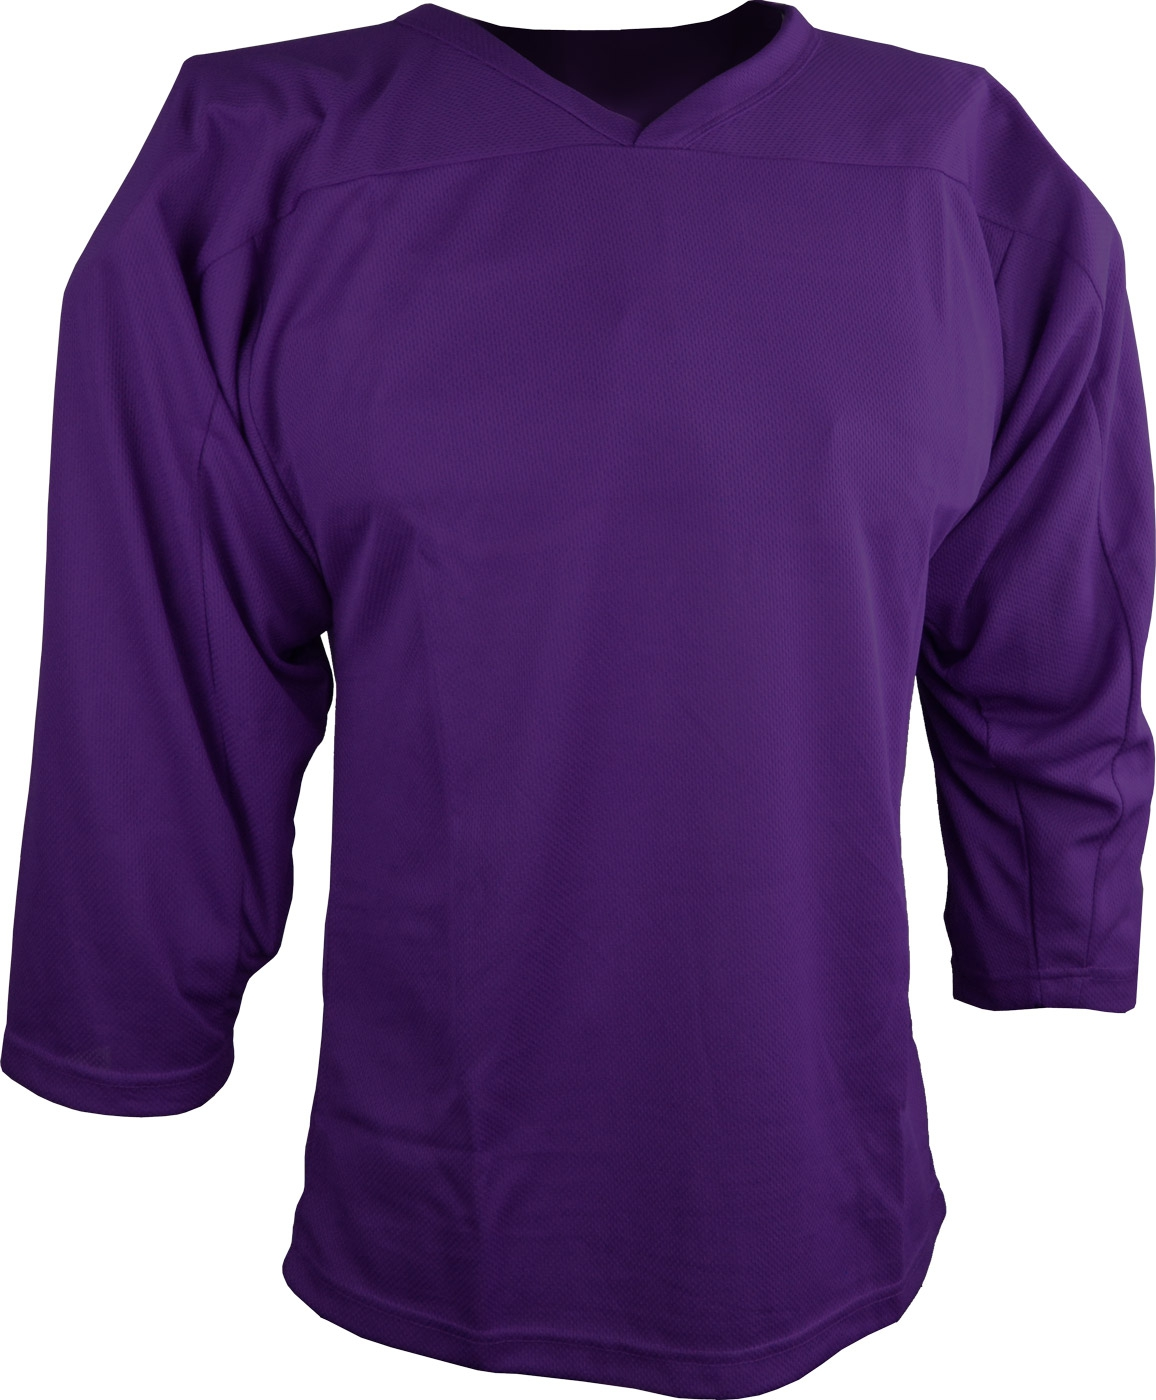 Sports Unlimited Youth Hockey Practice Jersey by